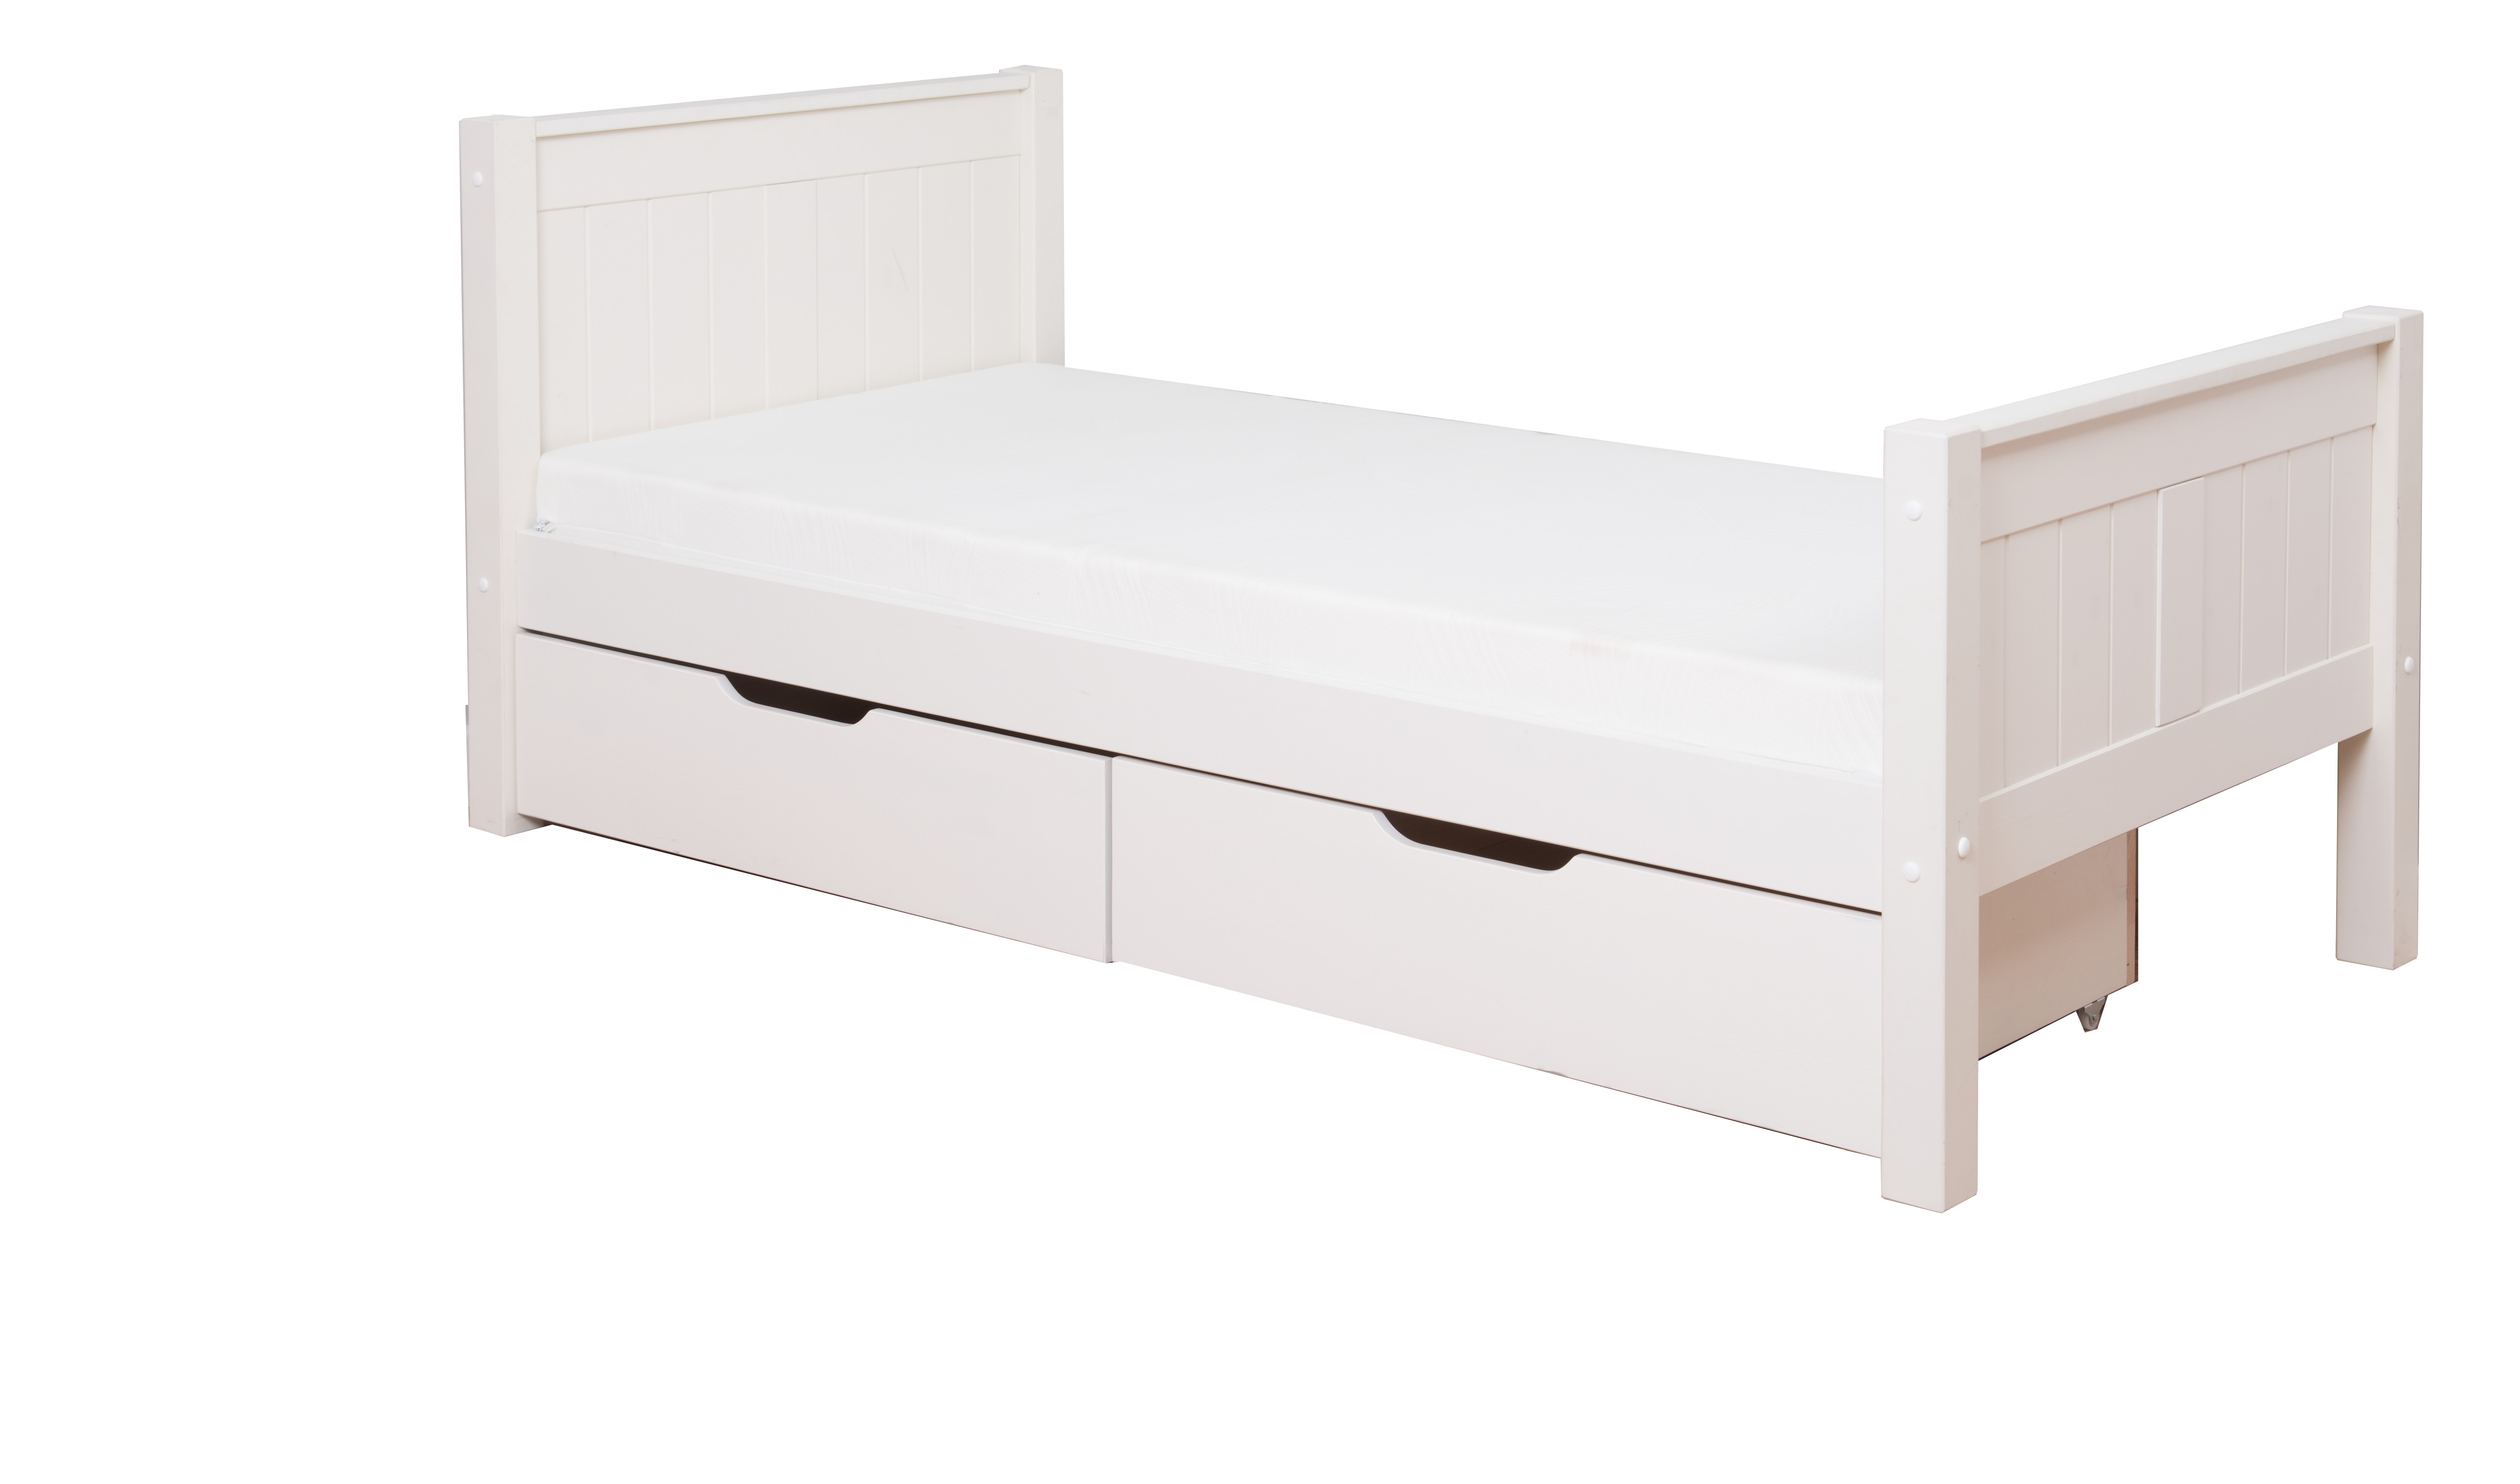 Classic single bed with underbed drawers by stompa for Bedroom furniture bed with drawers